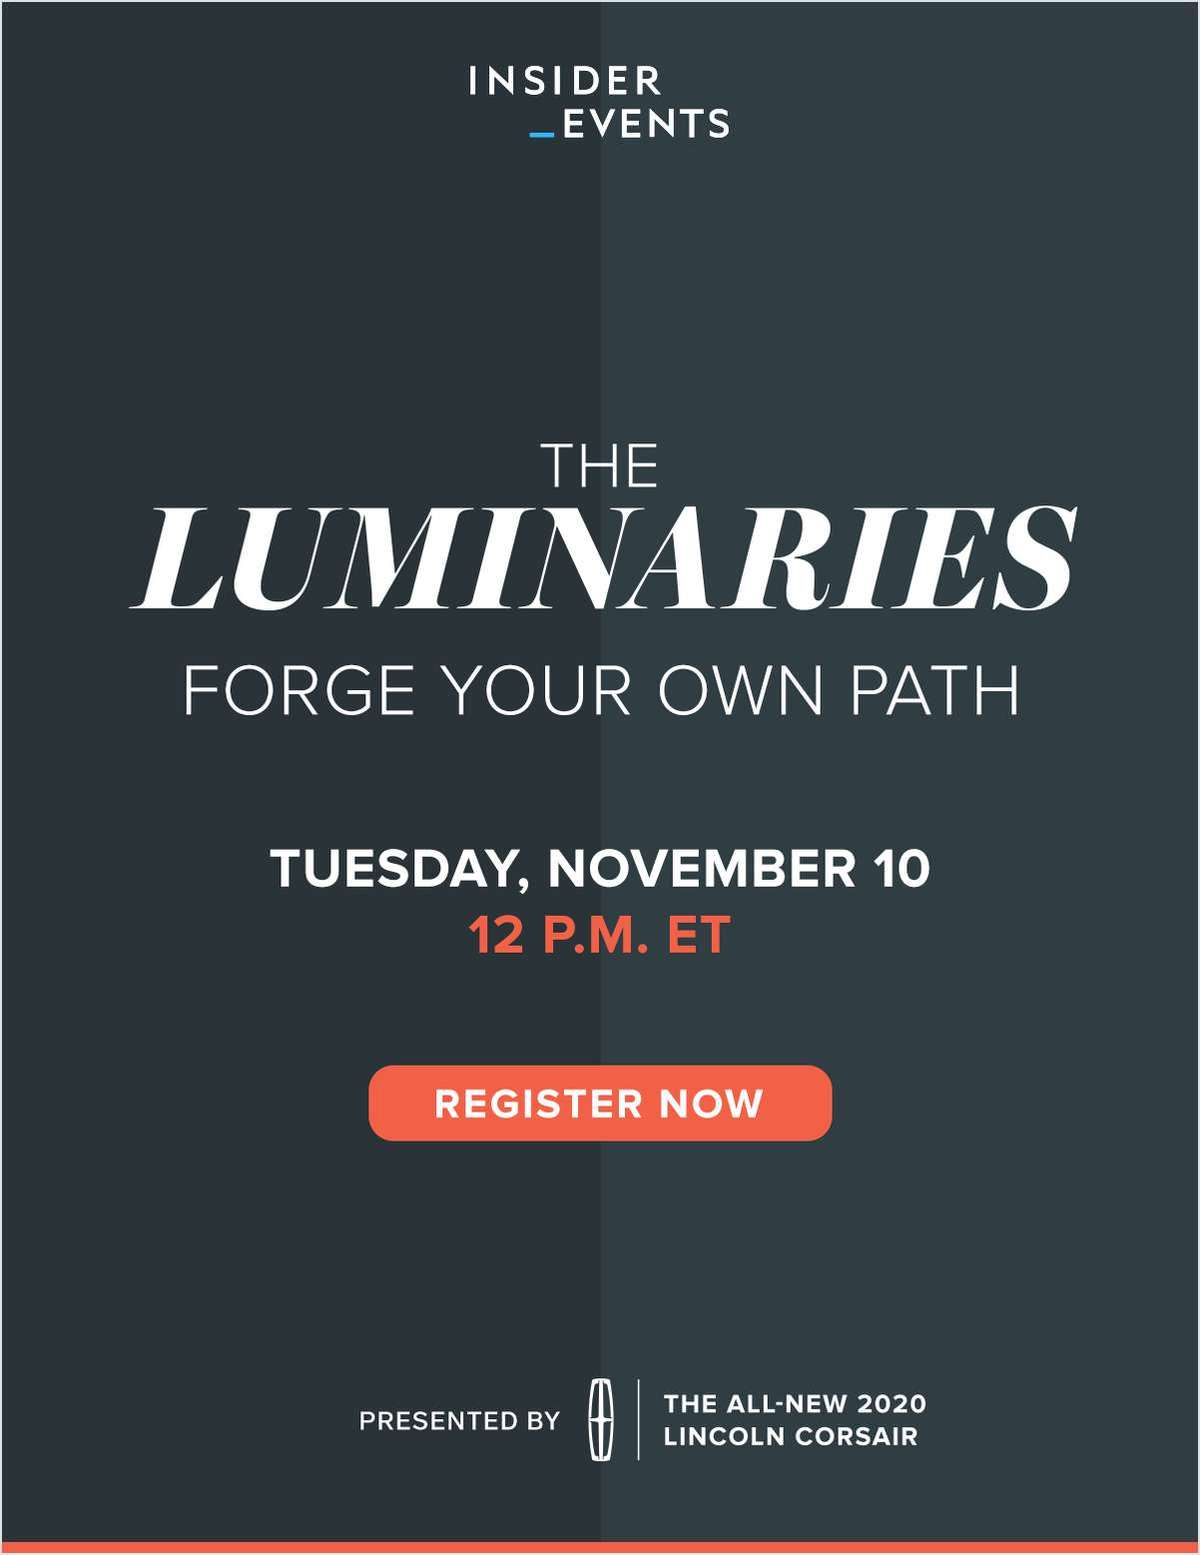 The Luminaries - Forge Your Own Path